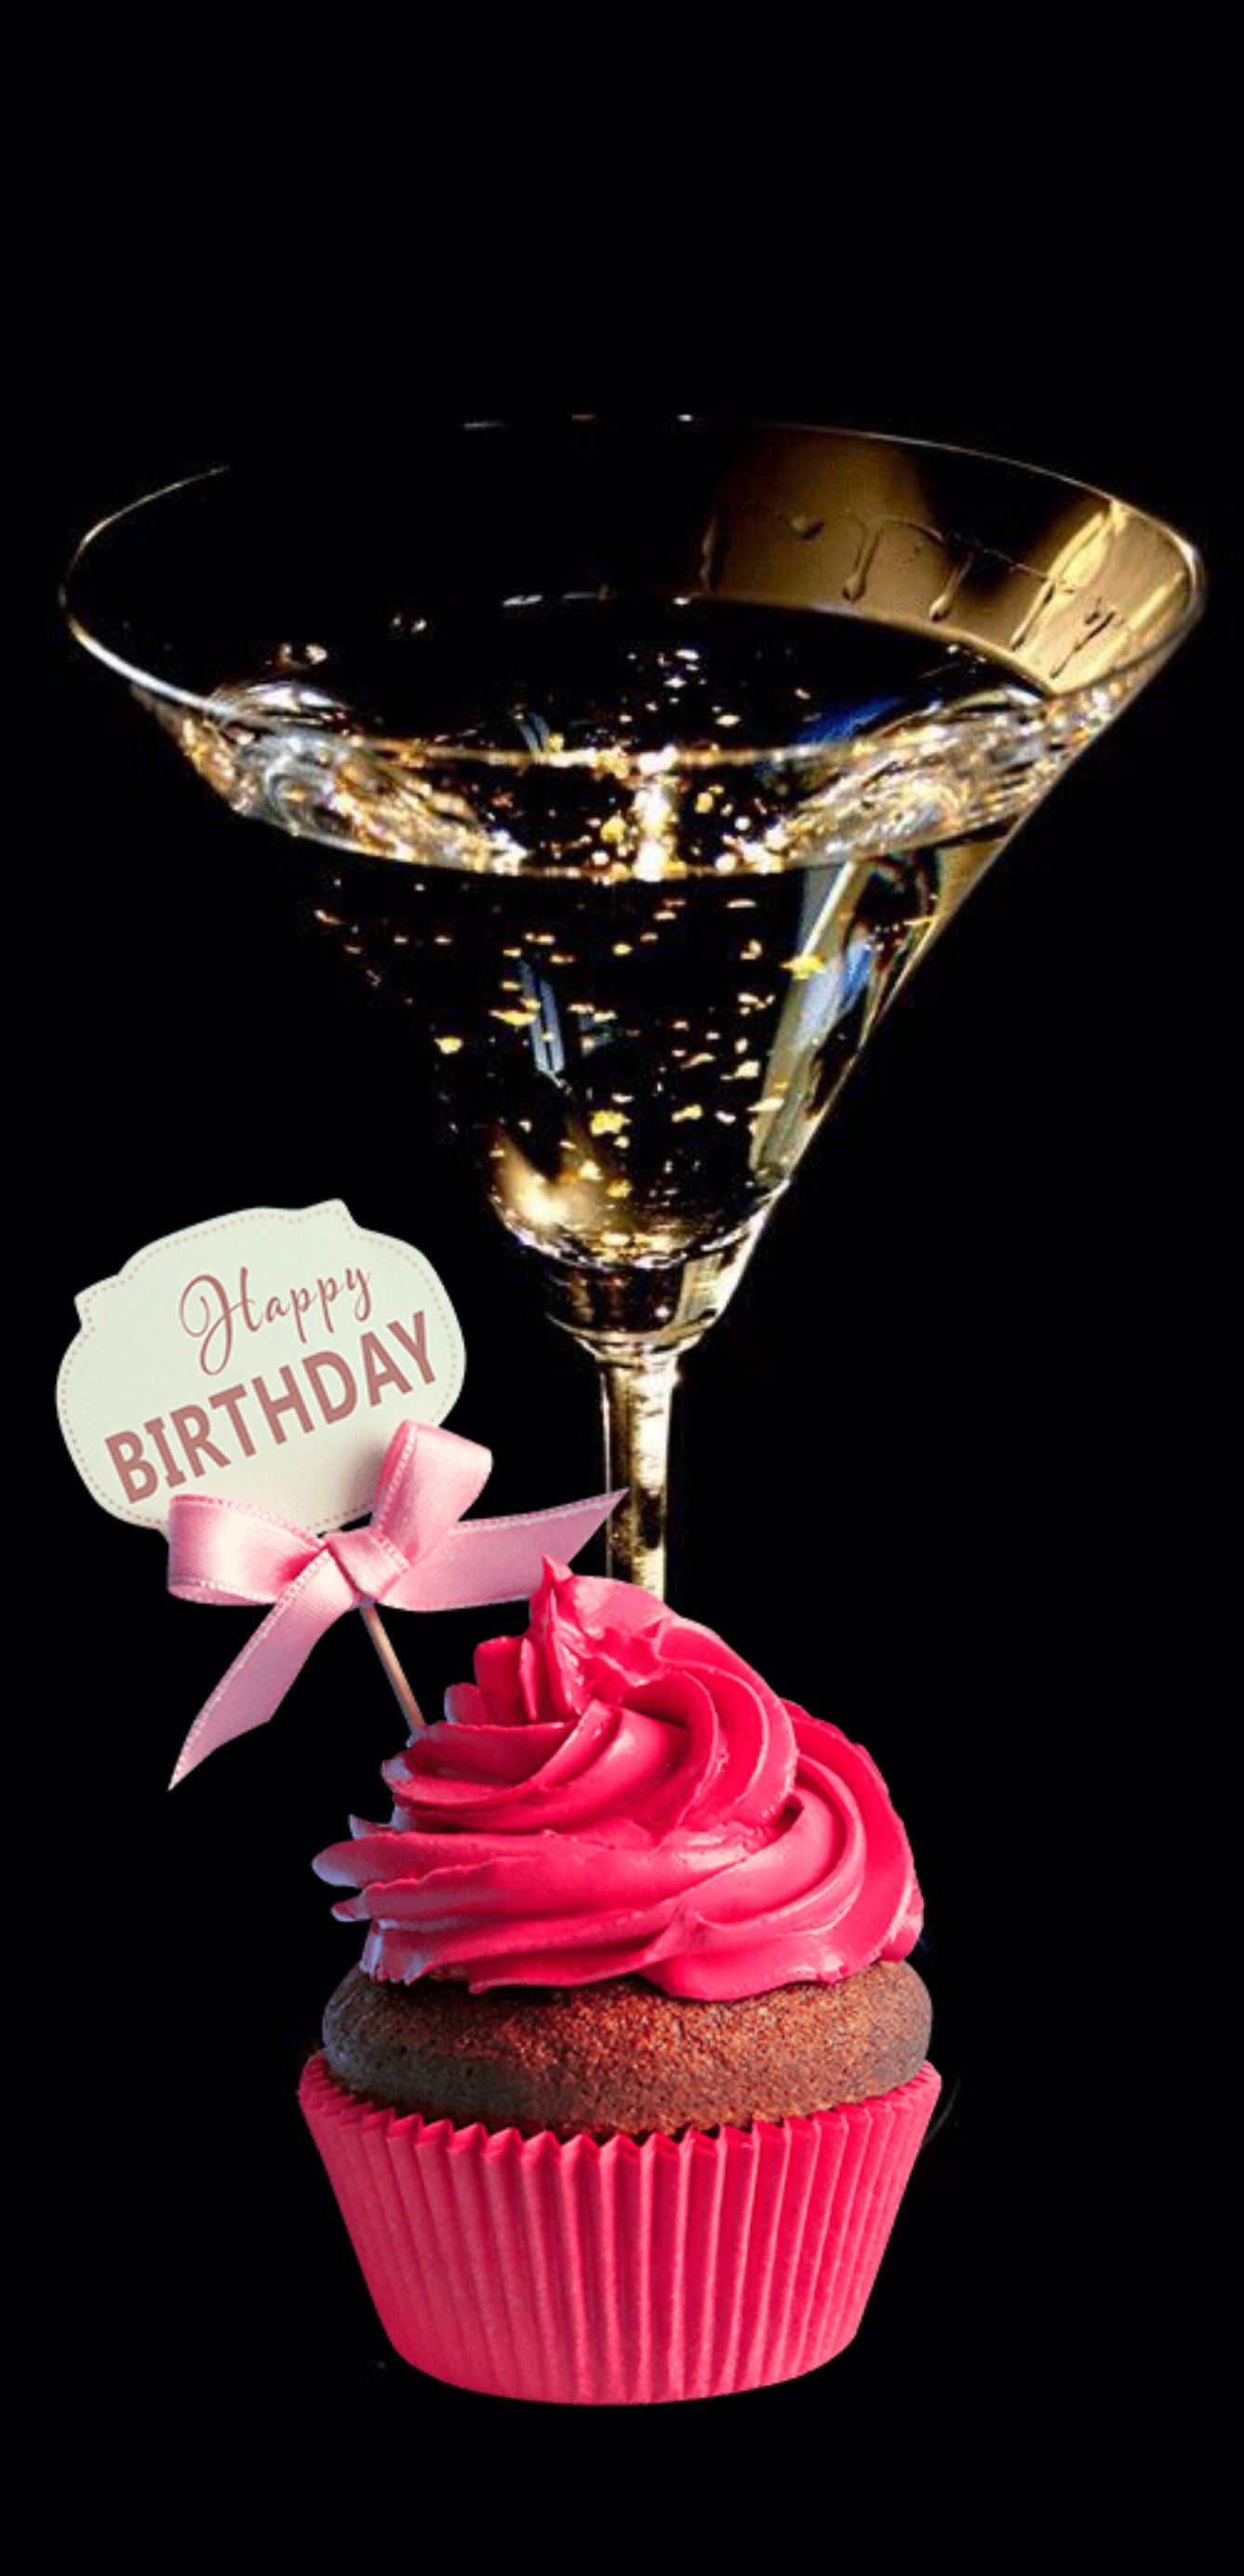 Happy Birthday Cupcake And Champagne Happy Birthday Cupcakes Happy Birthday Messages Cool Happy Birthday Images